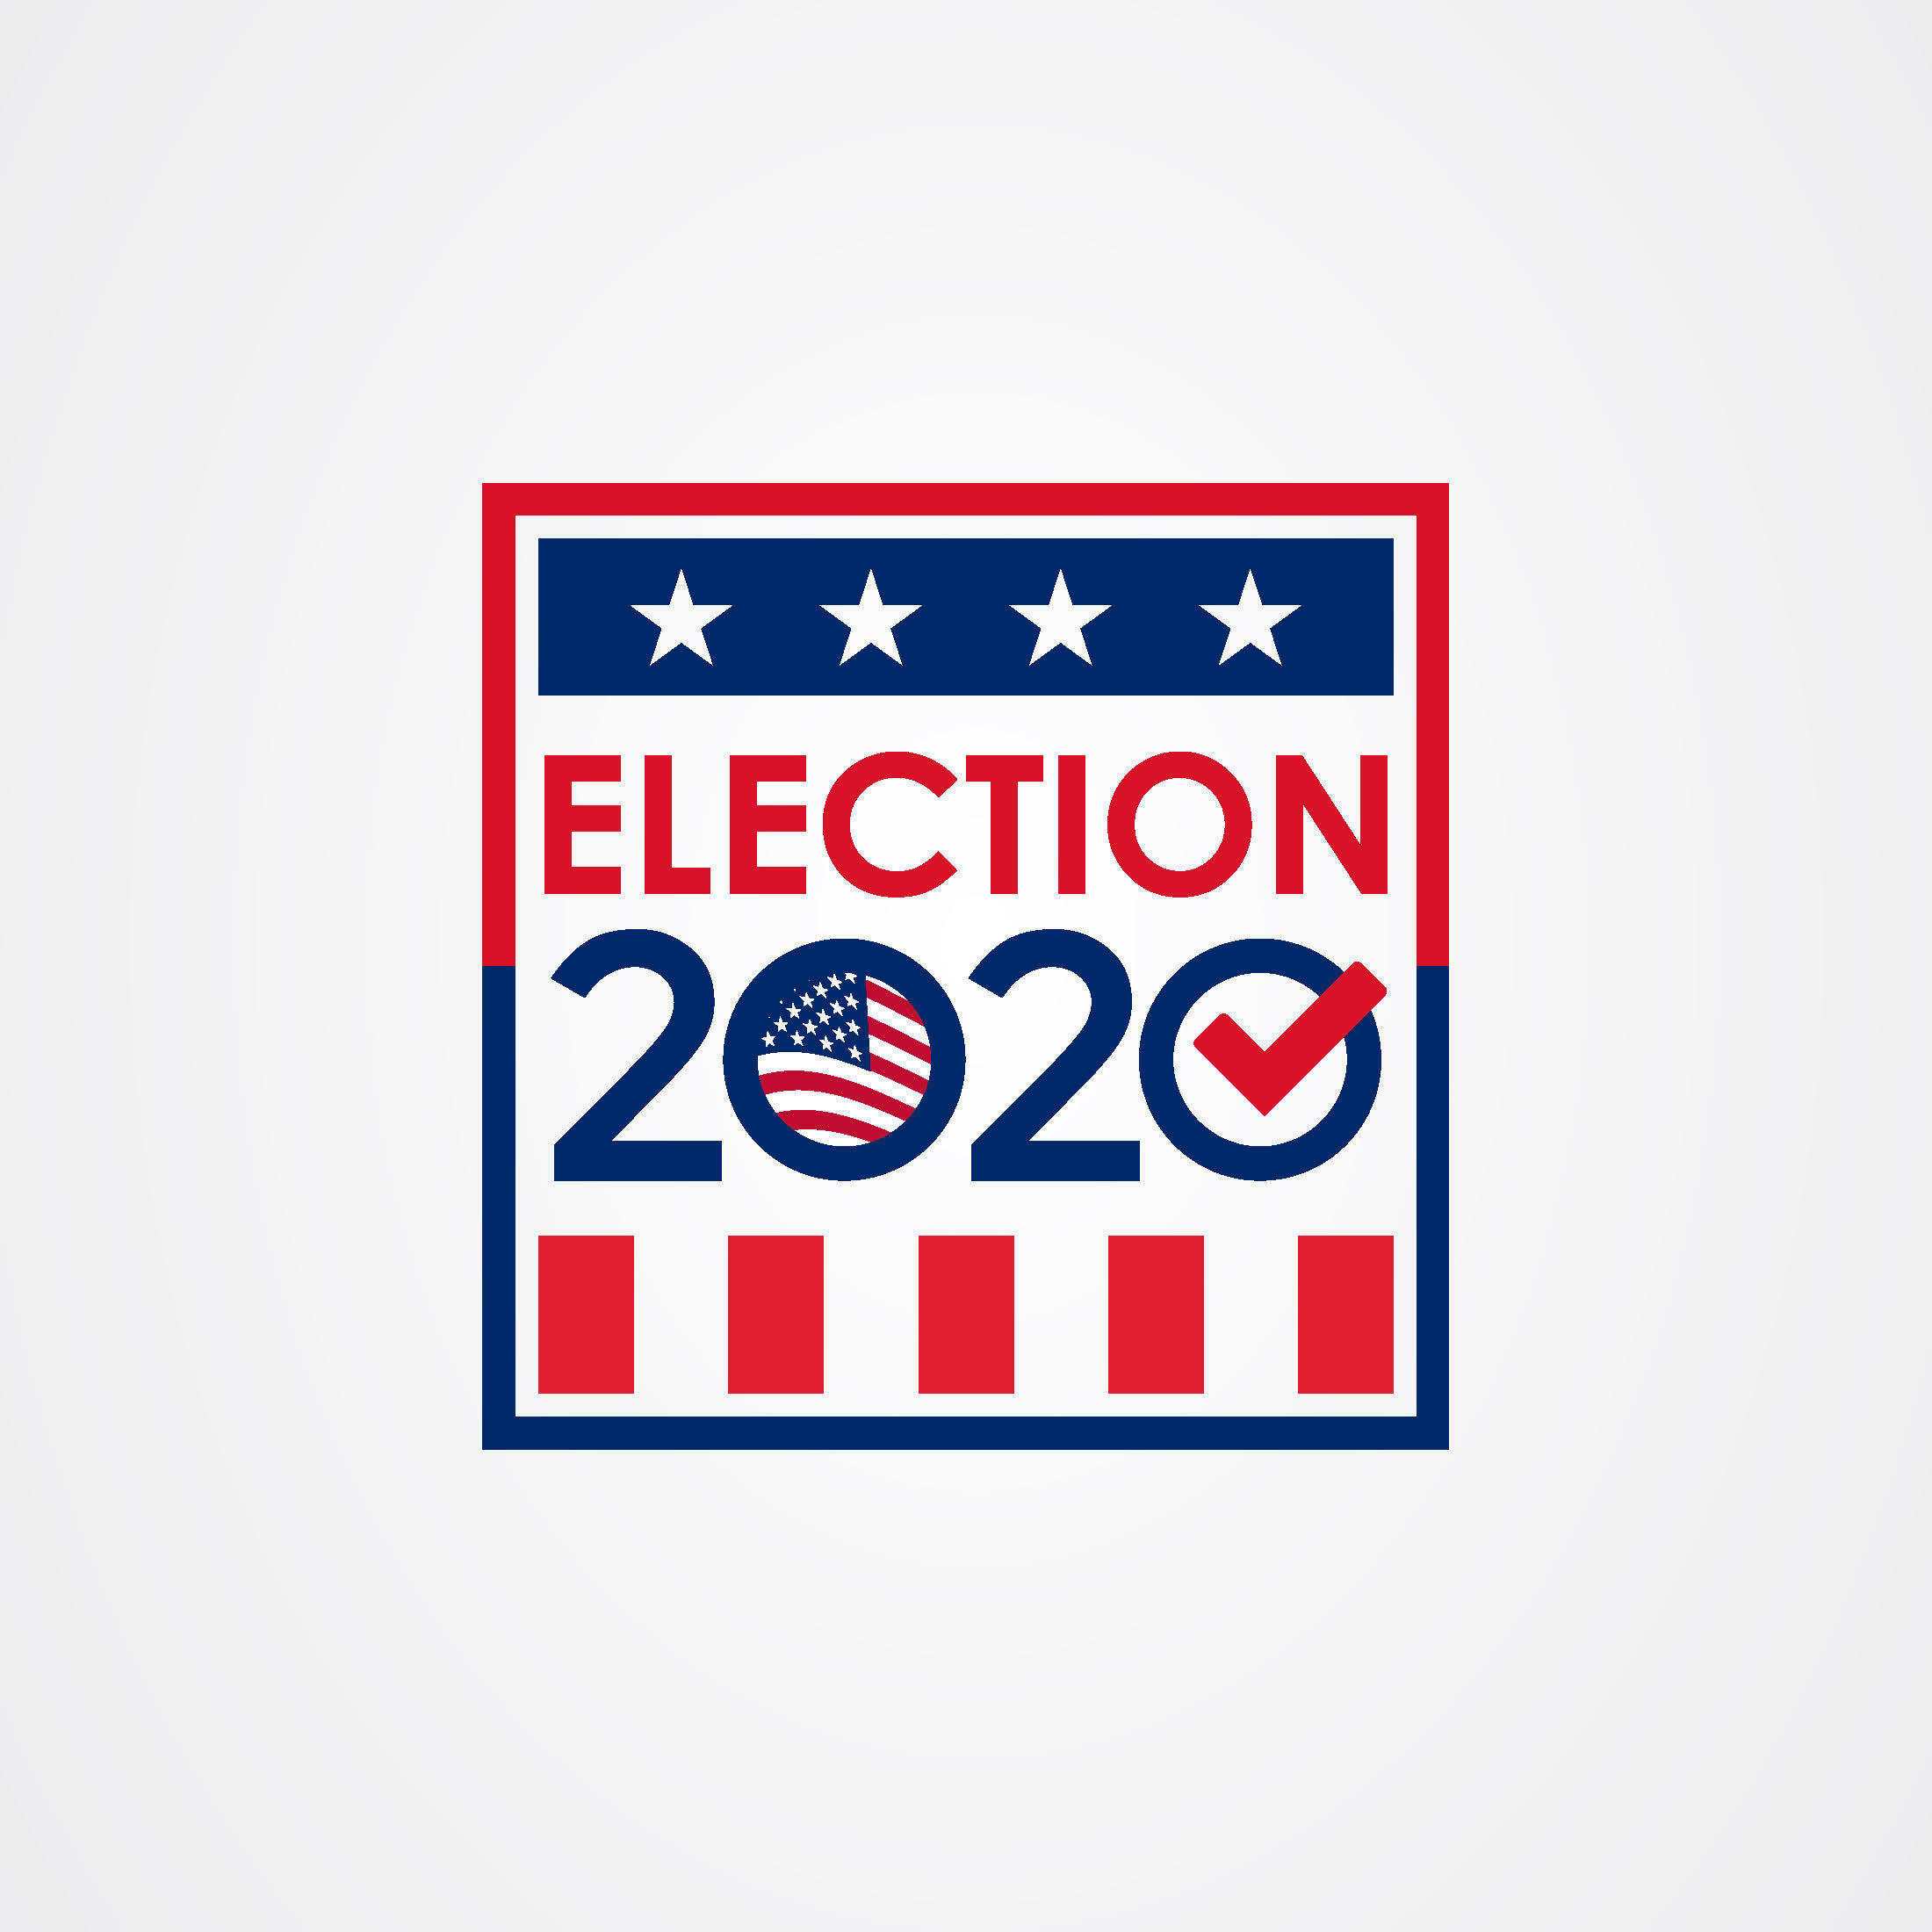 002_election-2020-IlloiStock-1196641854